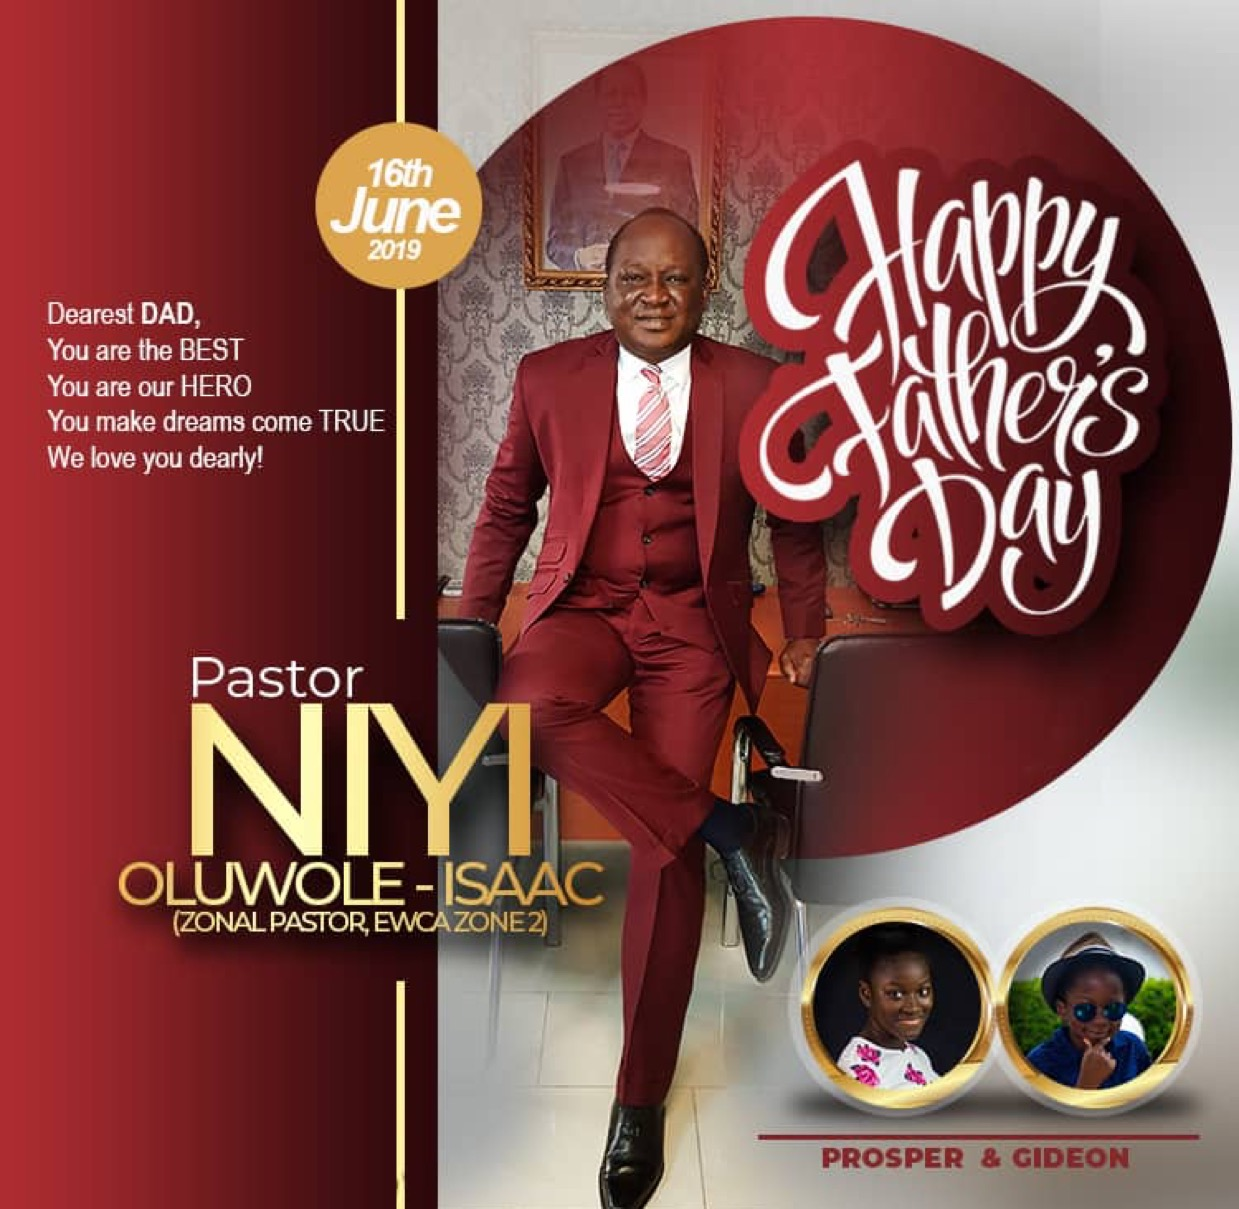 Happy Fathers Day Daddy From